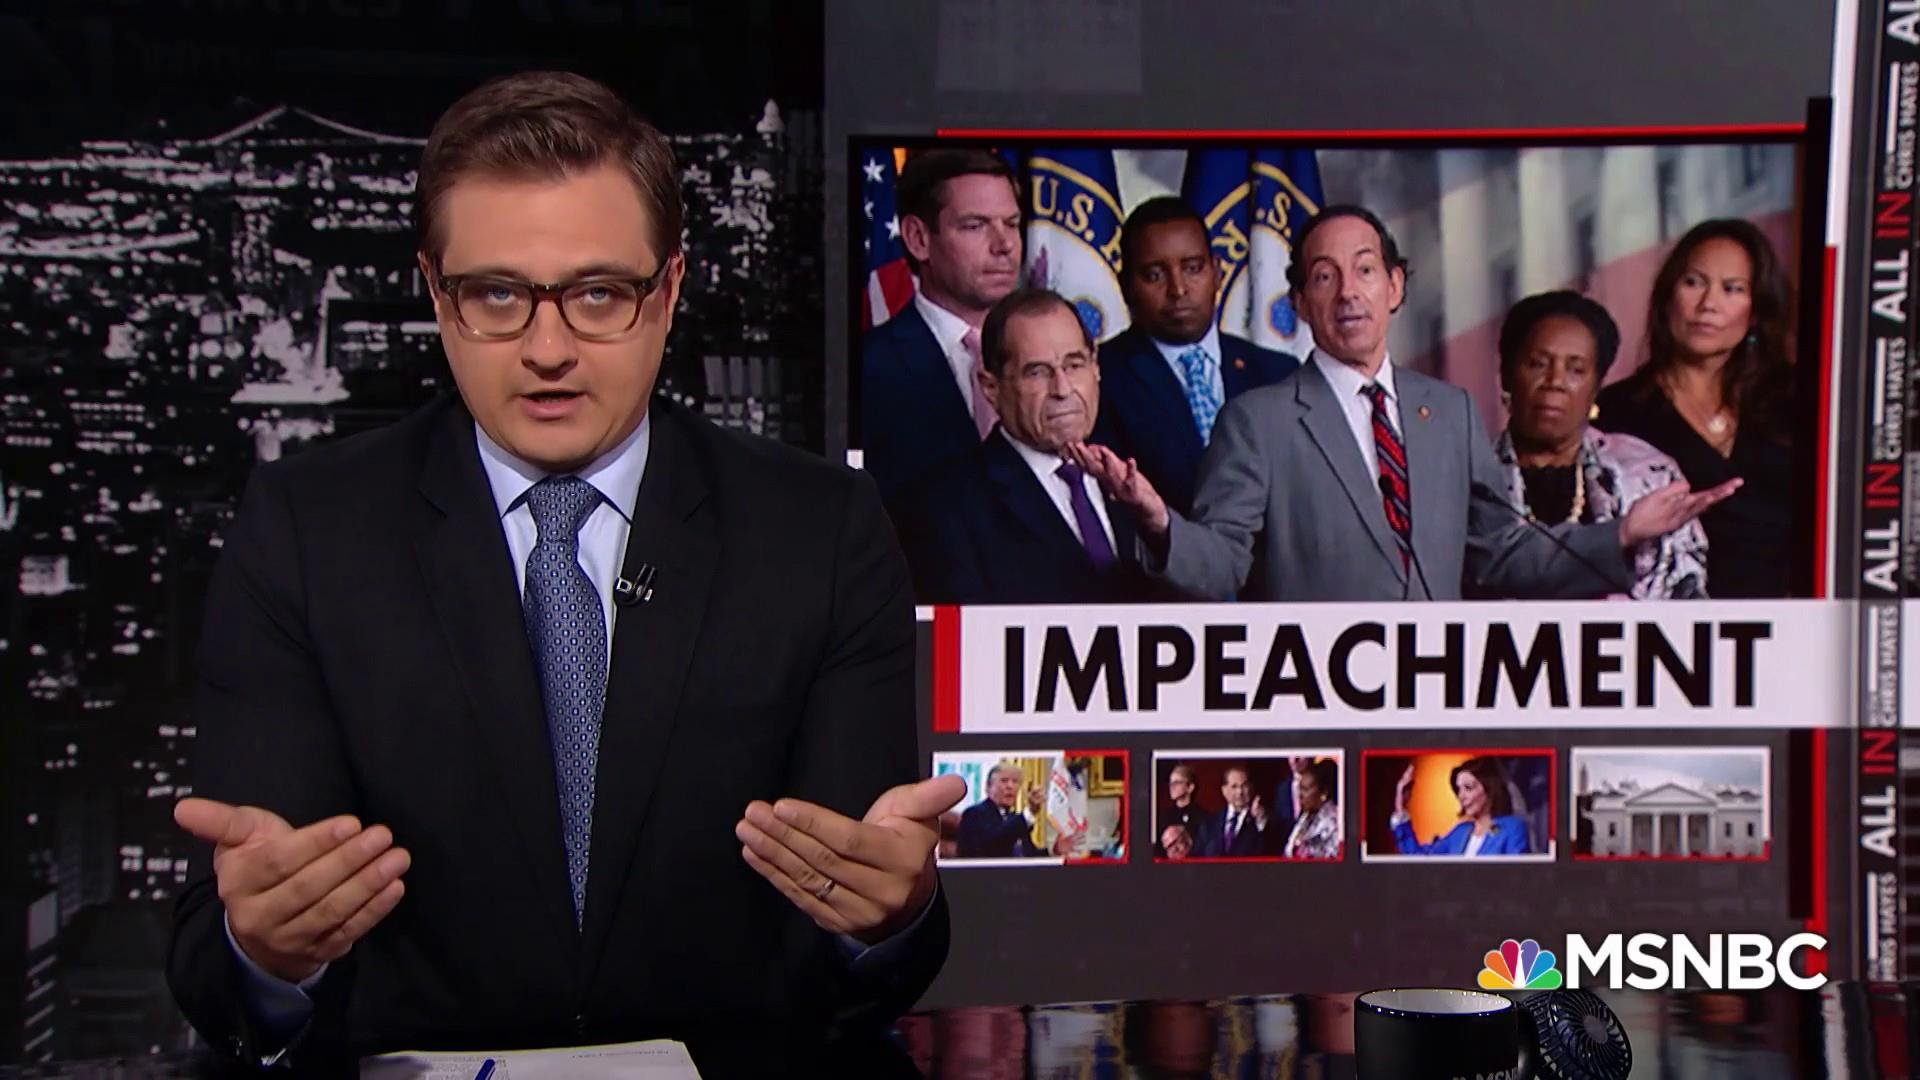 Rep. Nadler: Judiciary Committee considering articles of impeachment